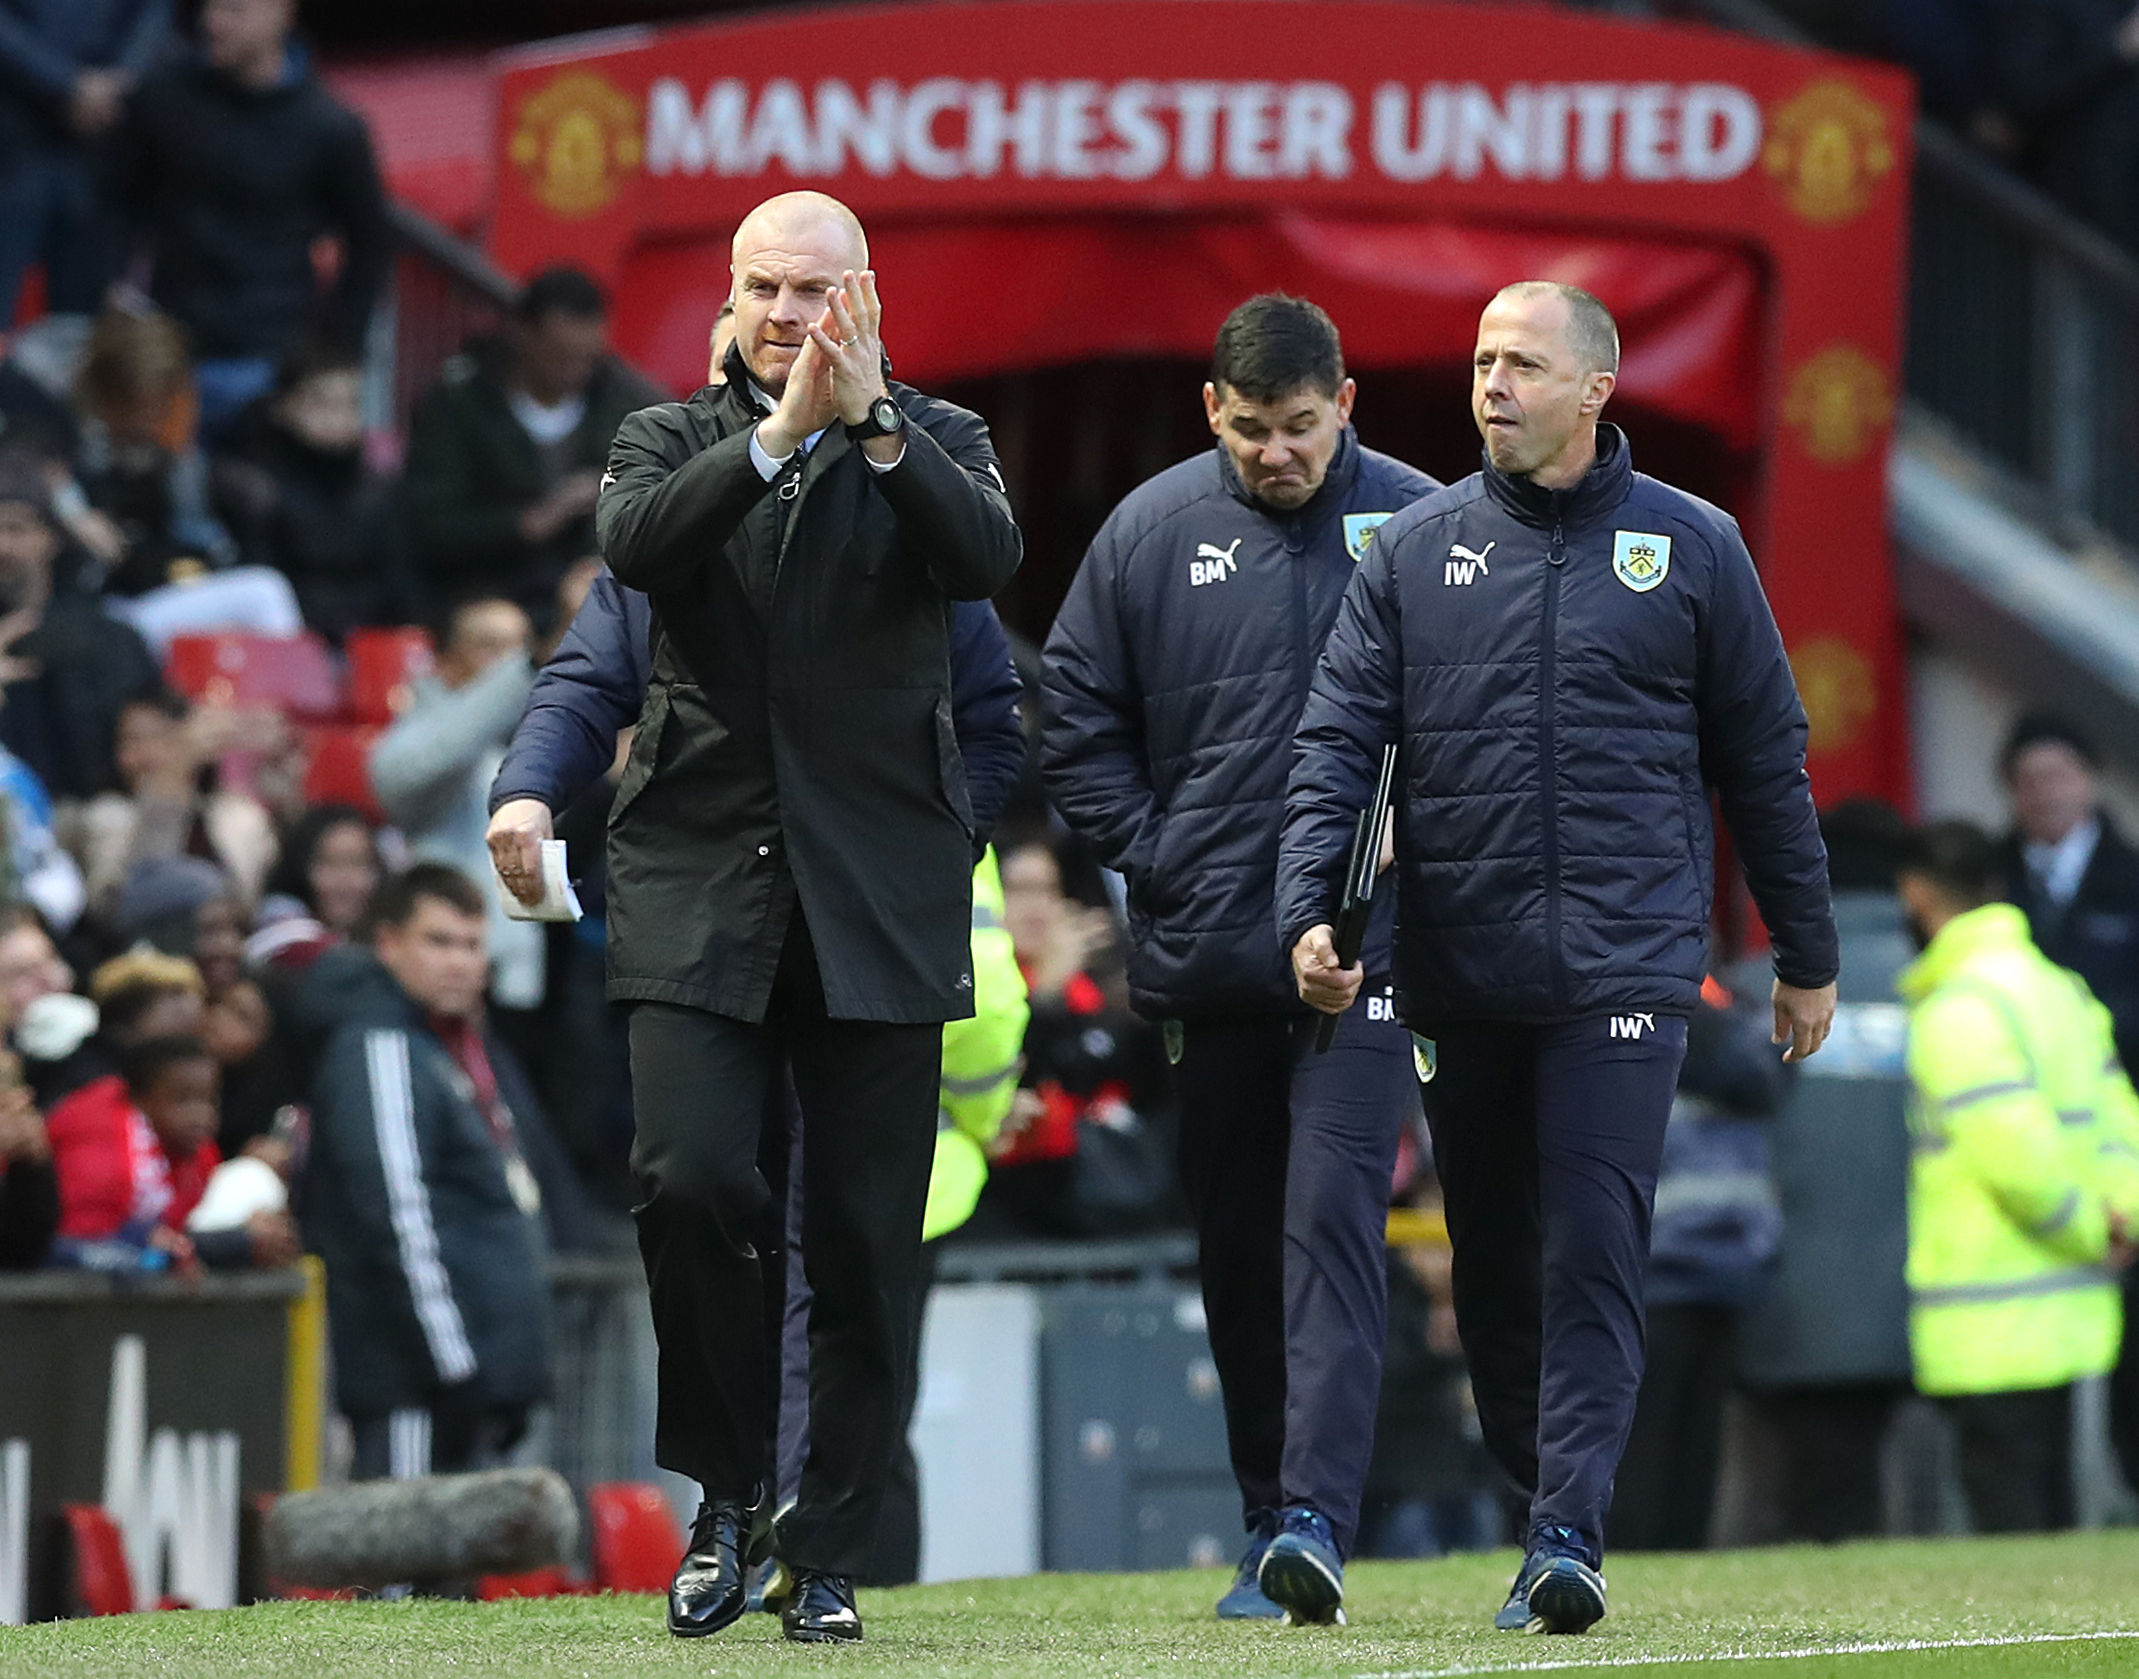 Sean Dyche applauds the Burnley fans at Old Trafford as the Clarets claim another fine away result